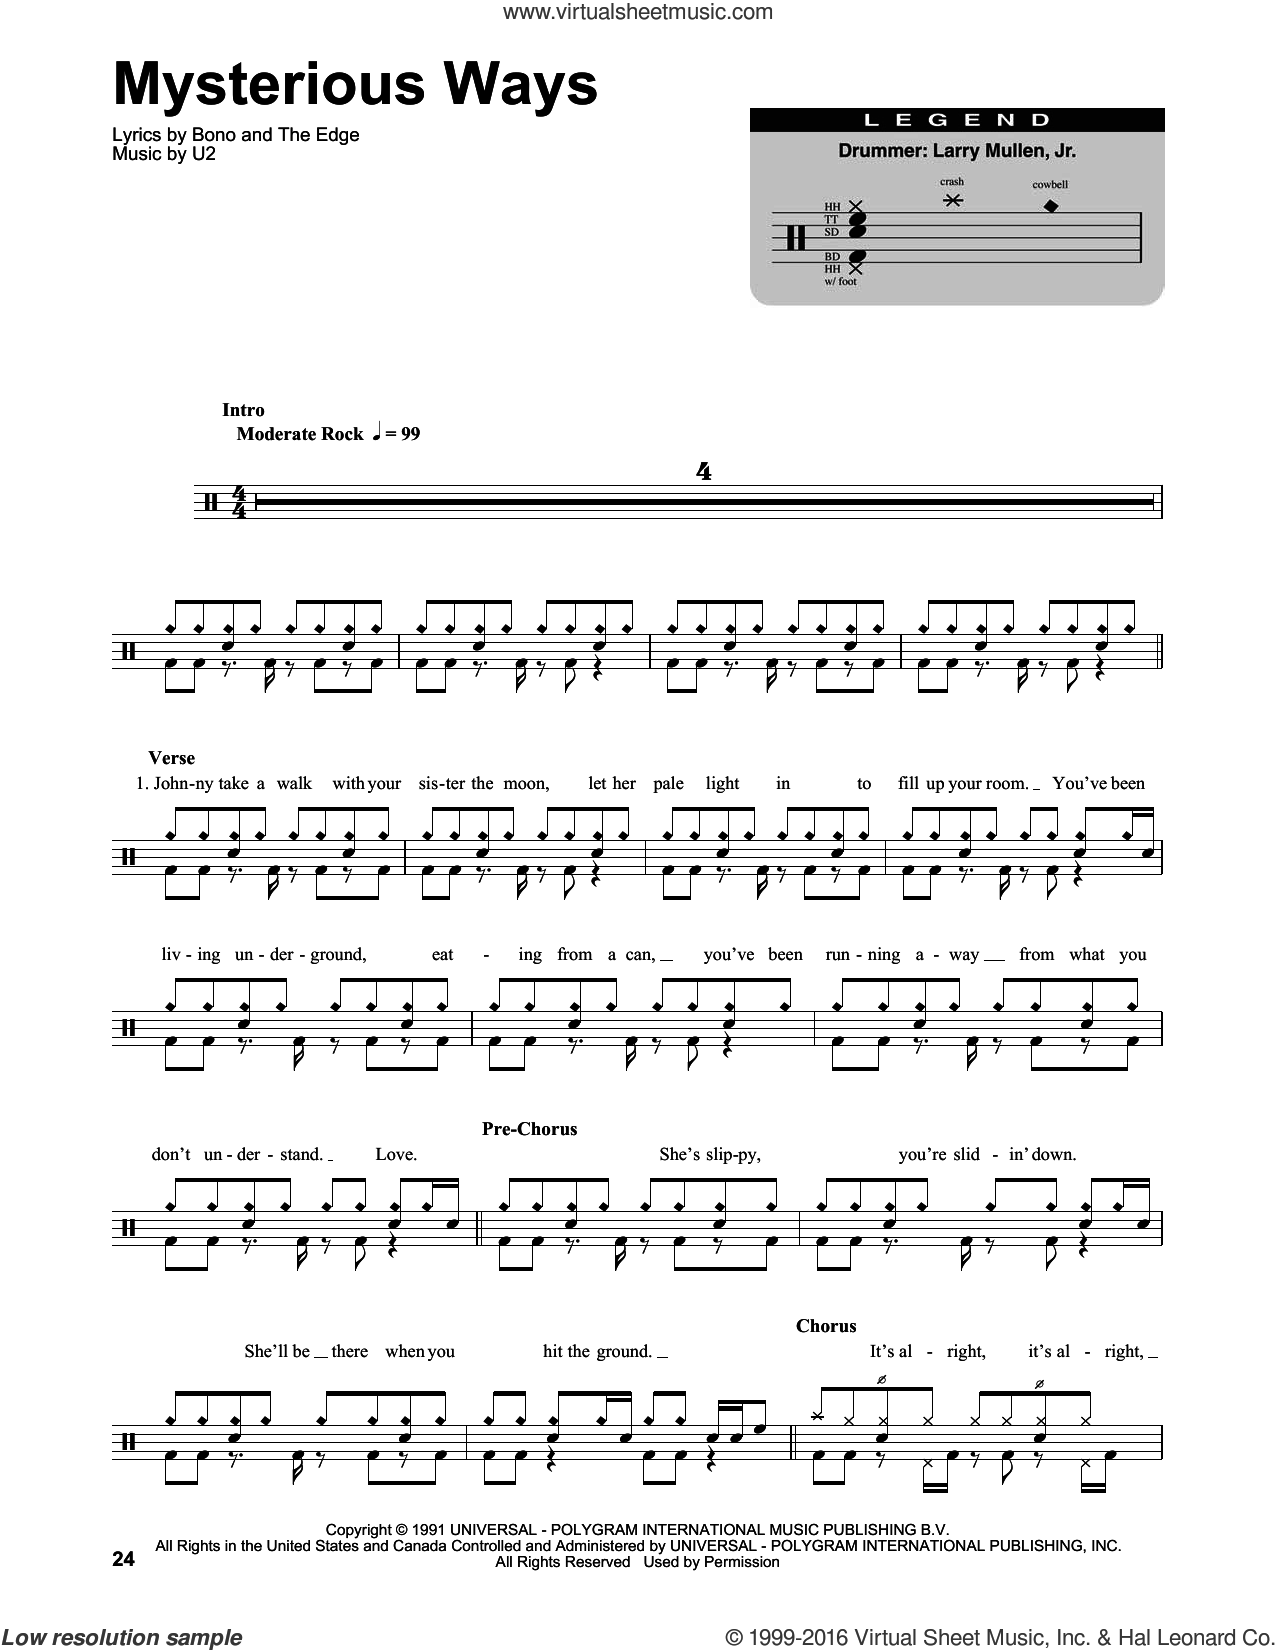 Mysterious Ways sheet music for drums by The Edge